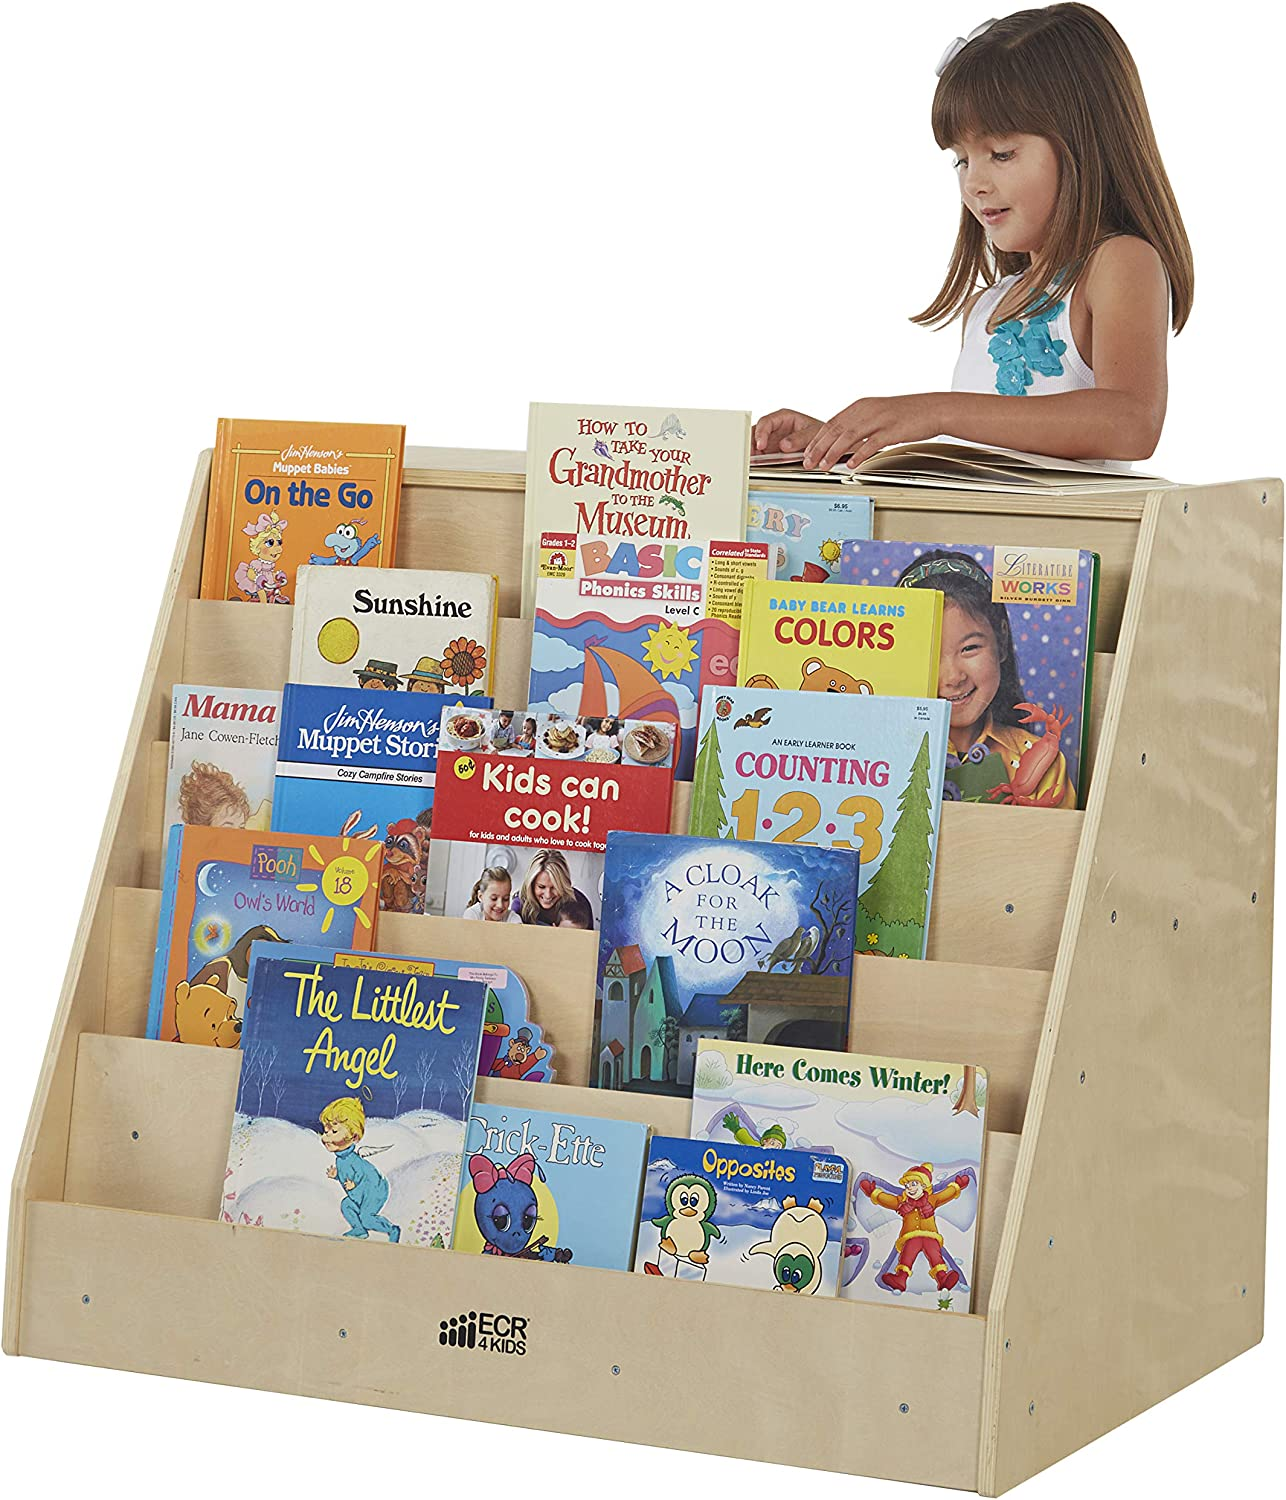 Amazon Com Ecr4kids Birch Book Display Stand With Storage With Rolling Casters Double Sided Hardwood Book Shelf Organizer For Kids 5 Shelves With 2 Shelves Mobile Display Stand For Classrooms And Home Natural Elr 0429 Industrial